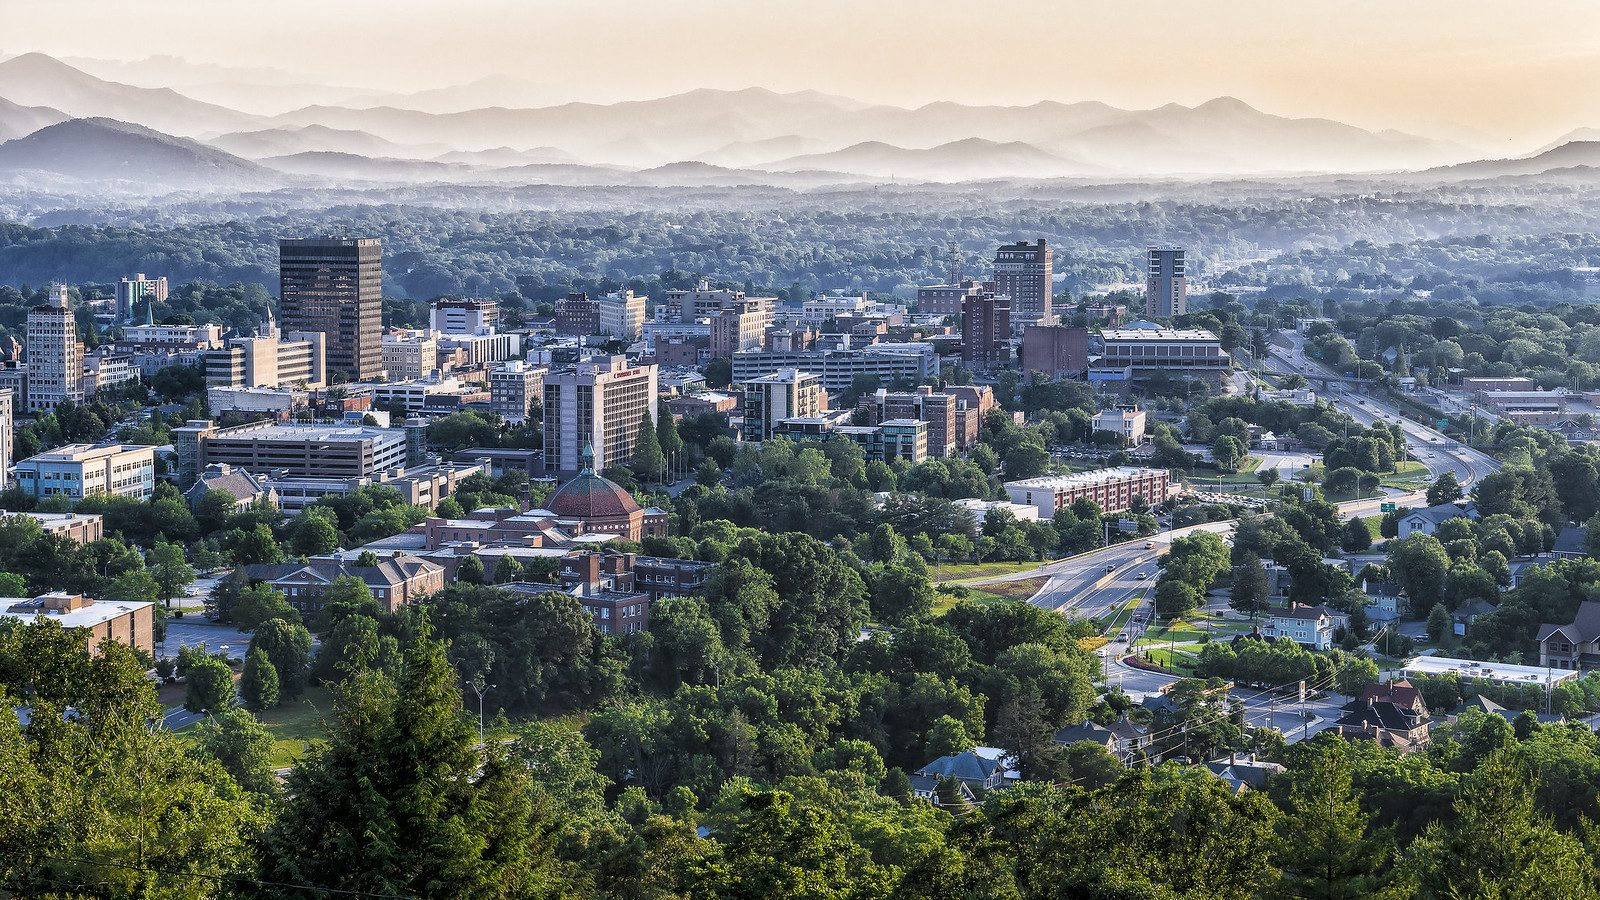 Asheville skyline by Photo by @CarShowShooter on Foter.com / CC BY-NC-SA